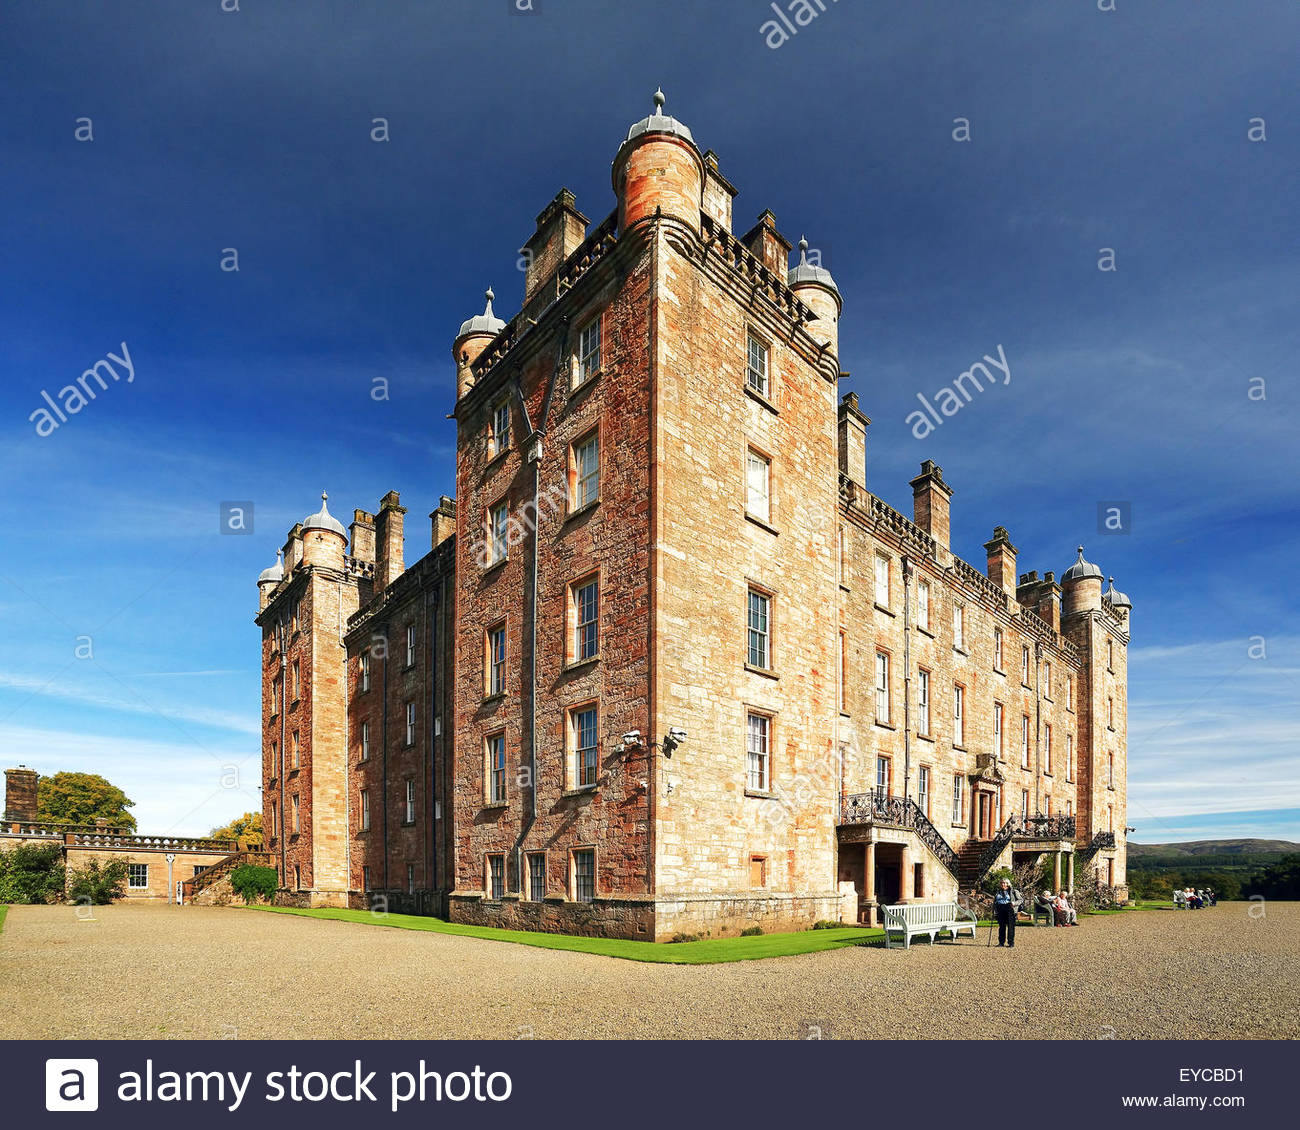 Drumlanrig Castle on a sunny day. Dumfrieshire, Scotland. - Stock Image